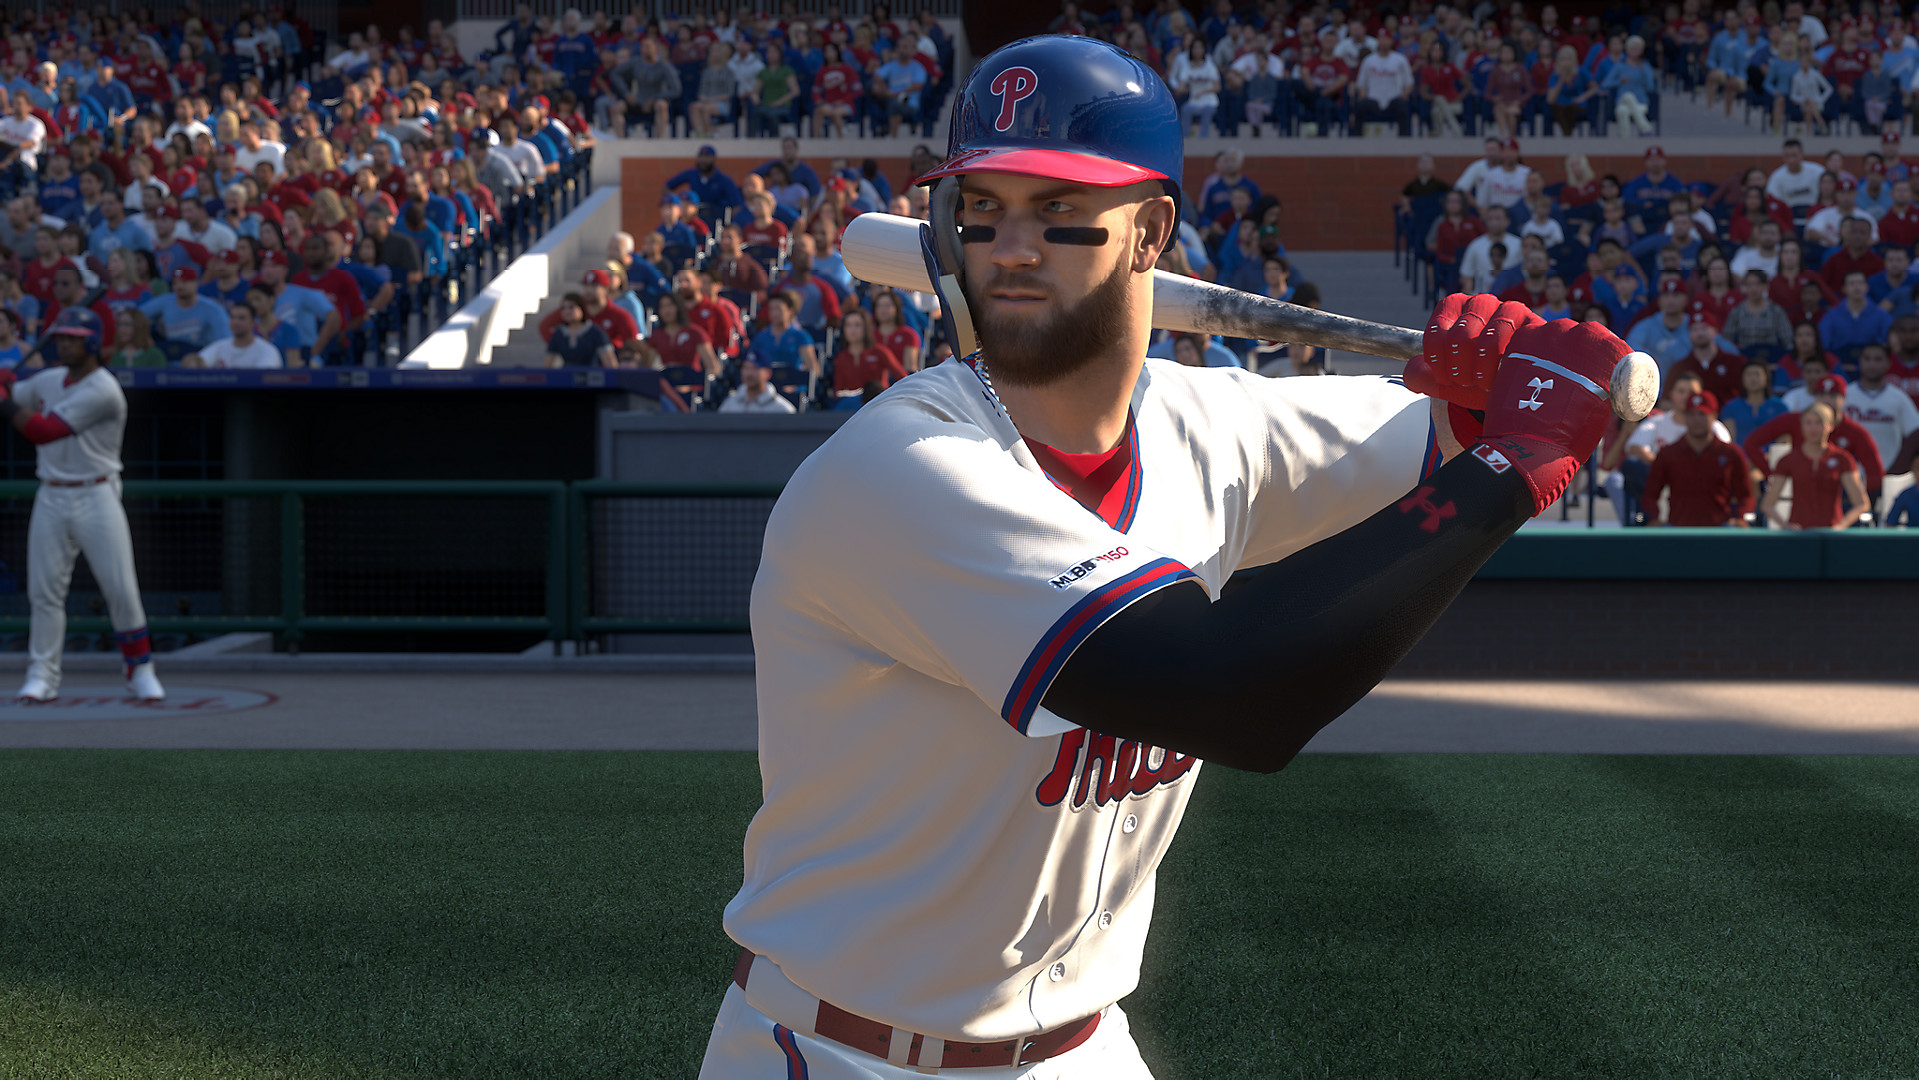 Bryce Harper of the Philadelphia Phillies in his stance at home plate in MLB The Show 19